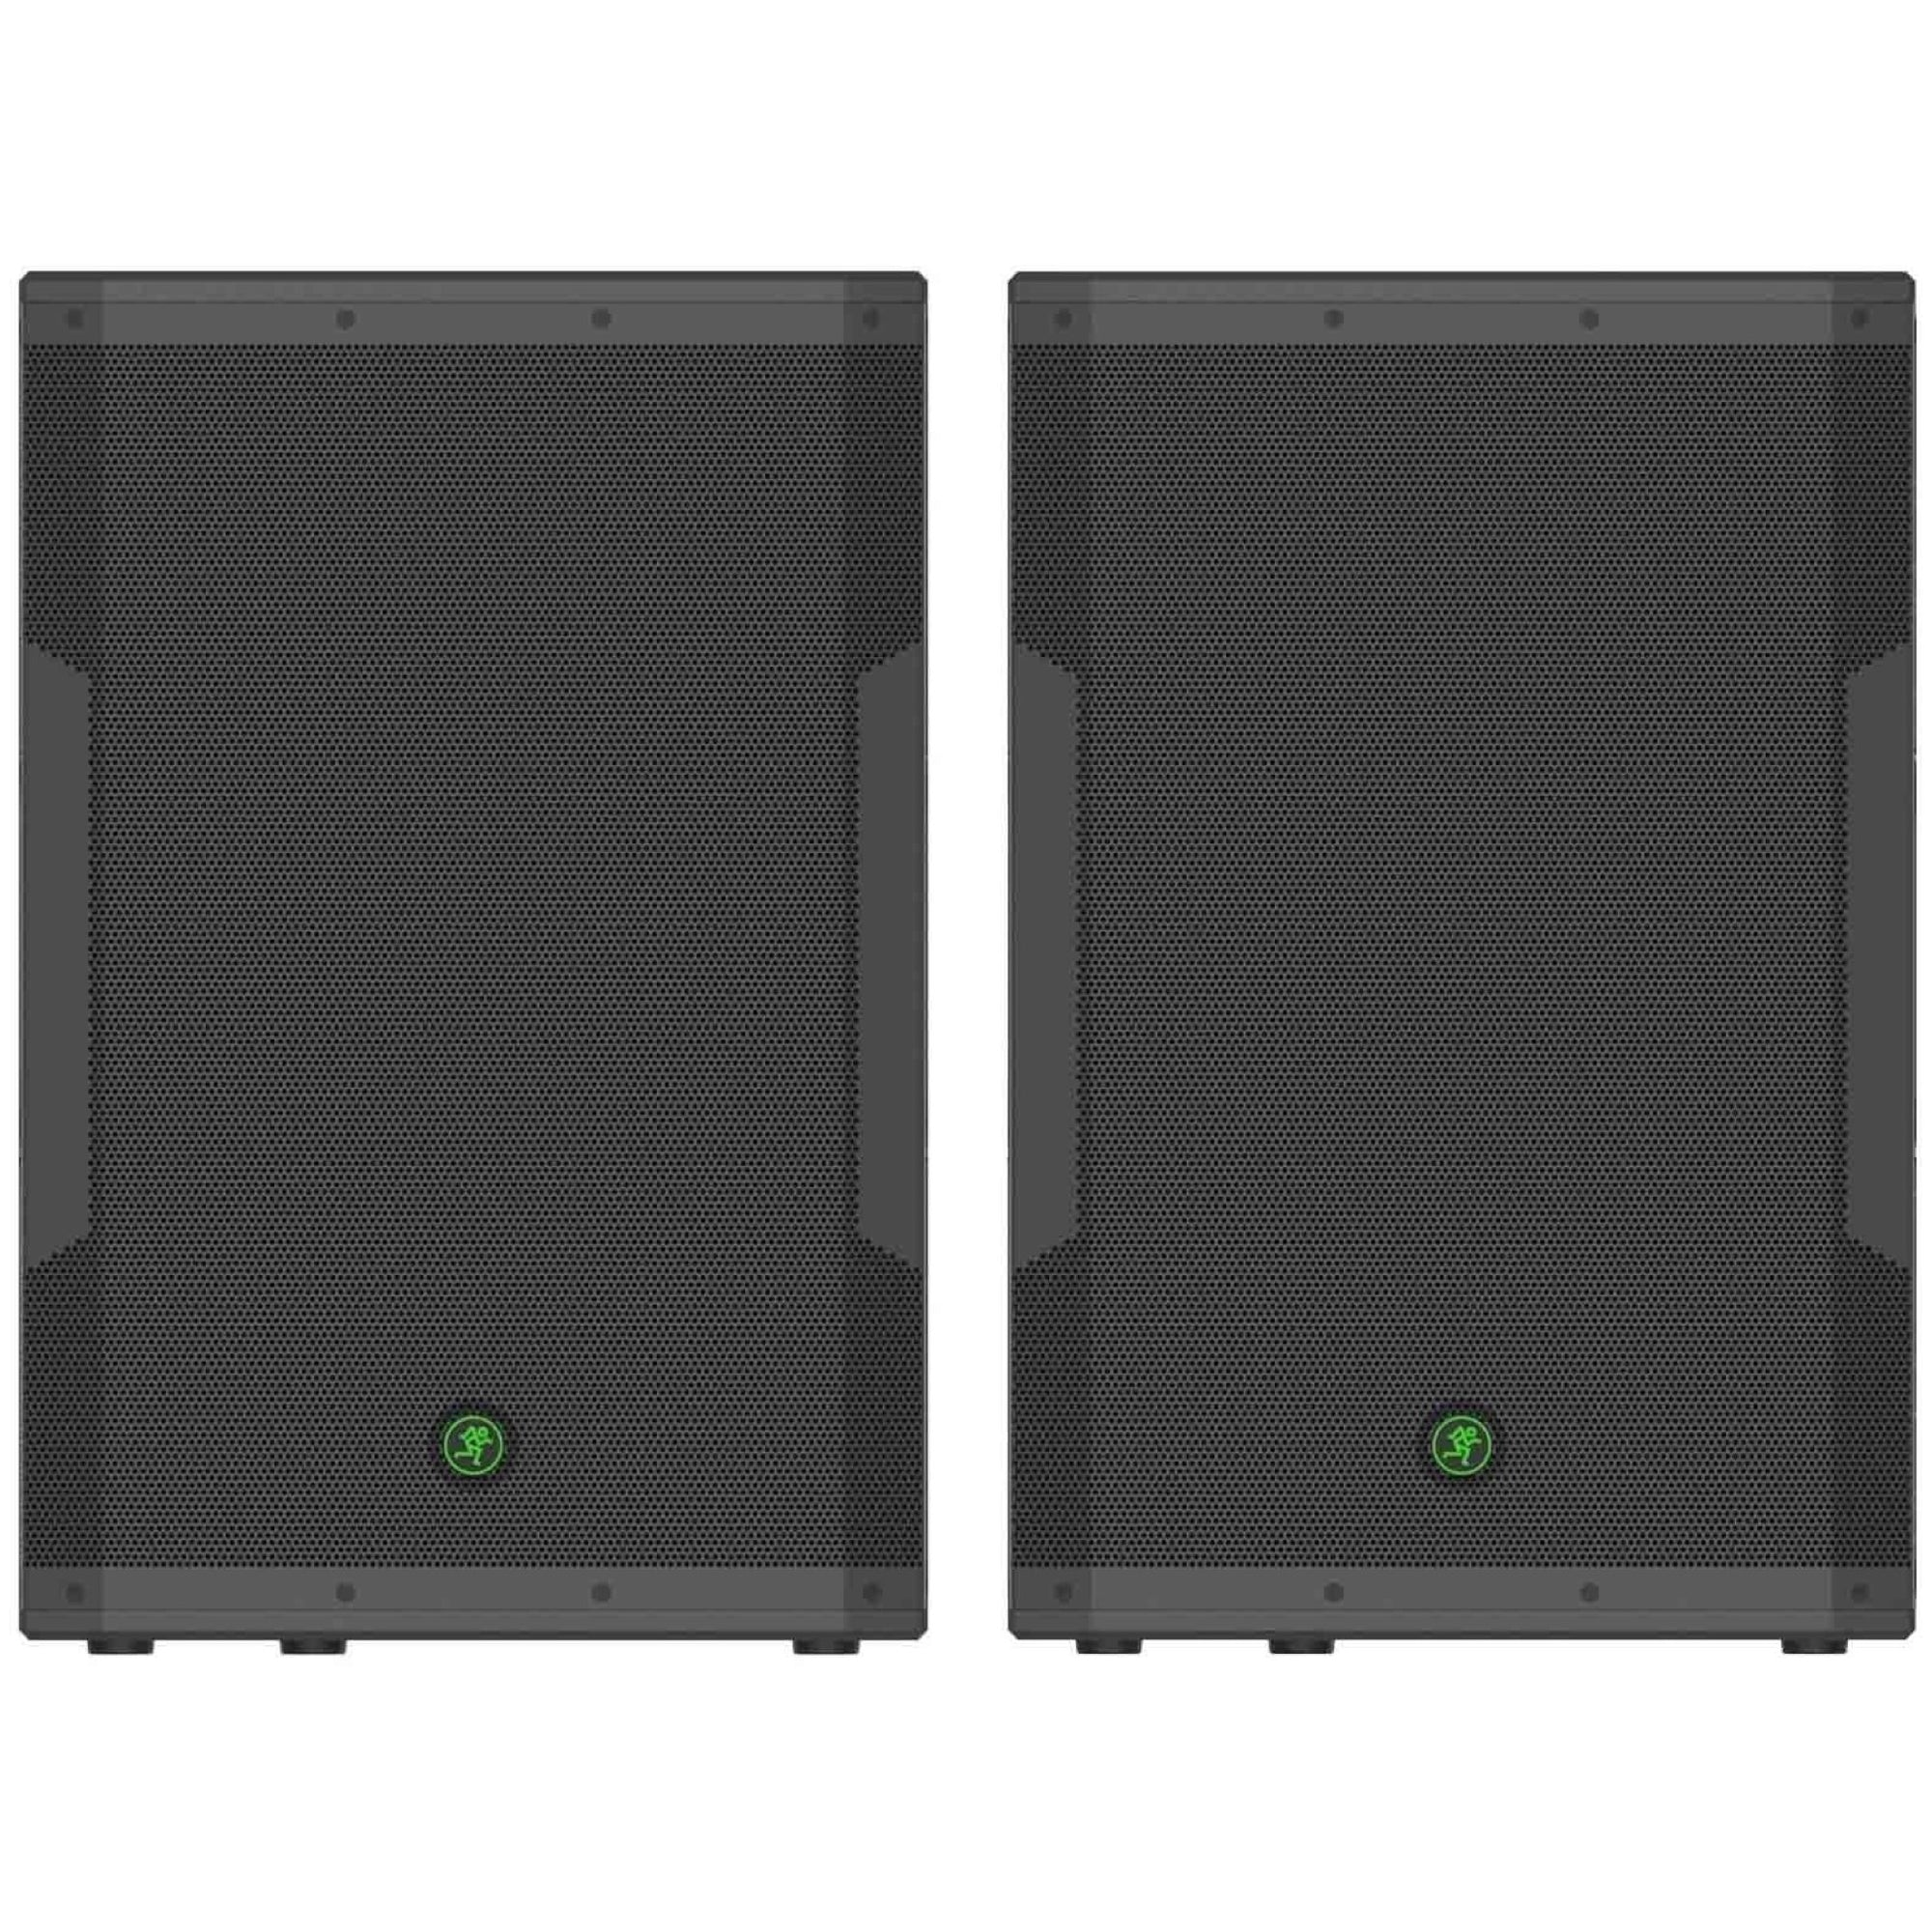 Mackie SRM650 Powered Speaker (1600 Watts, 1x15 Inch), Pair